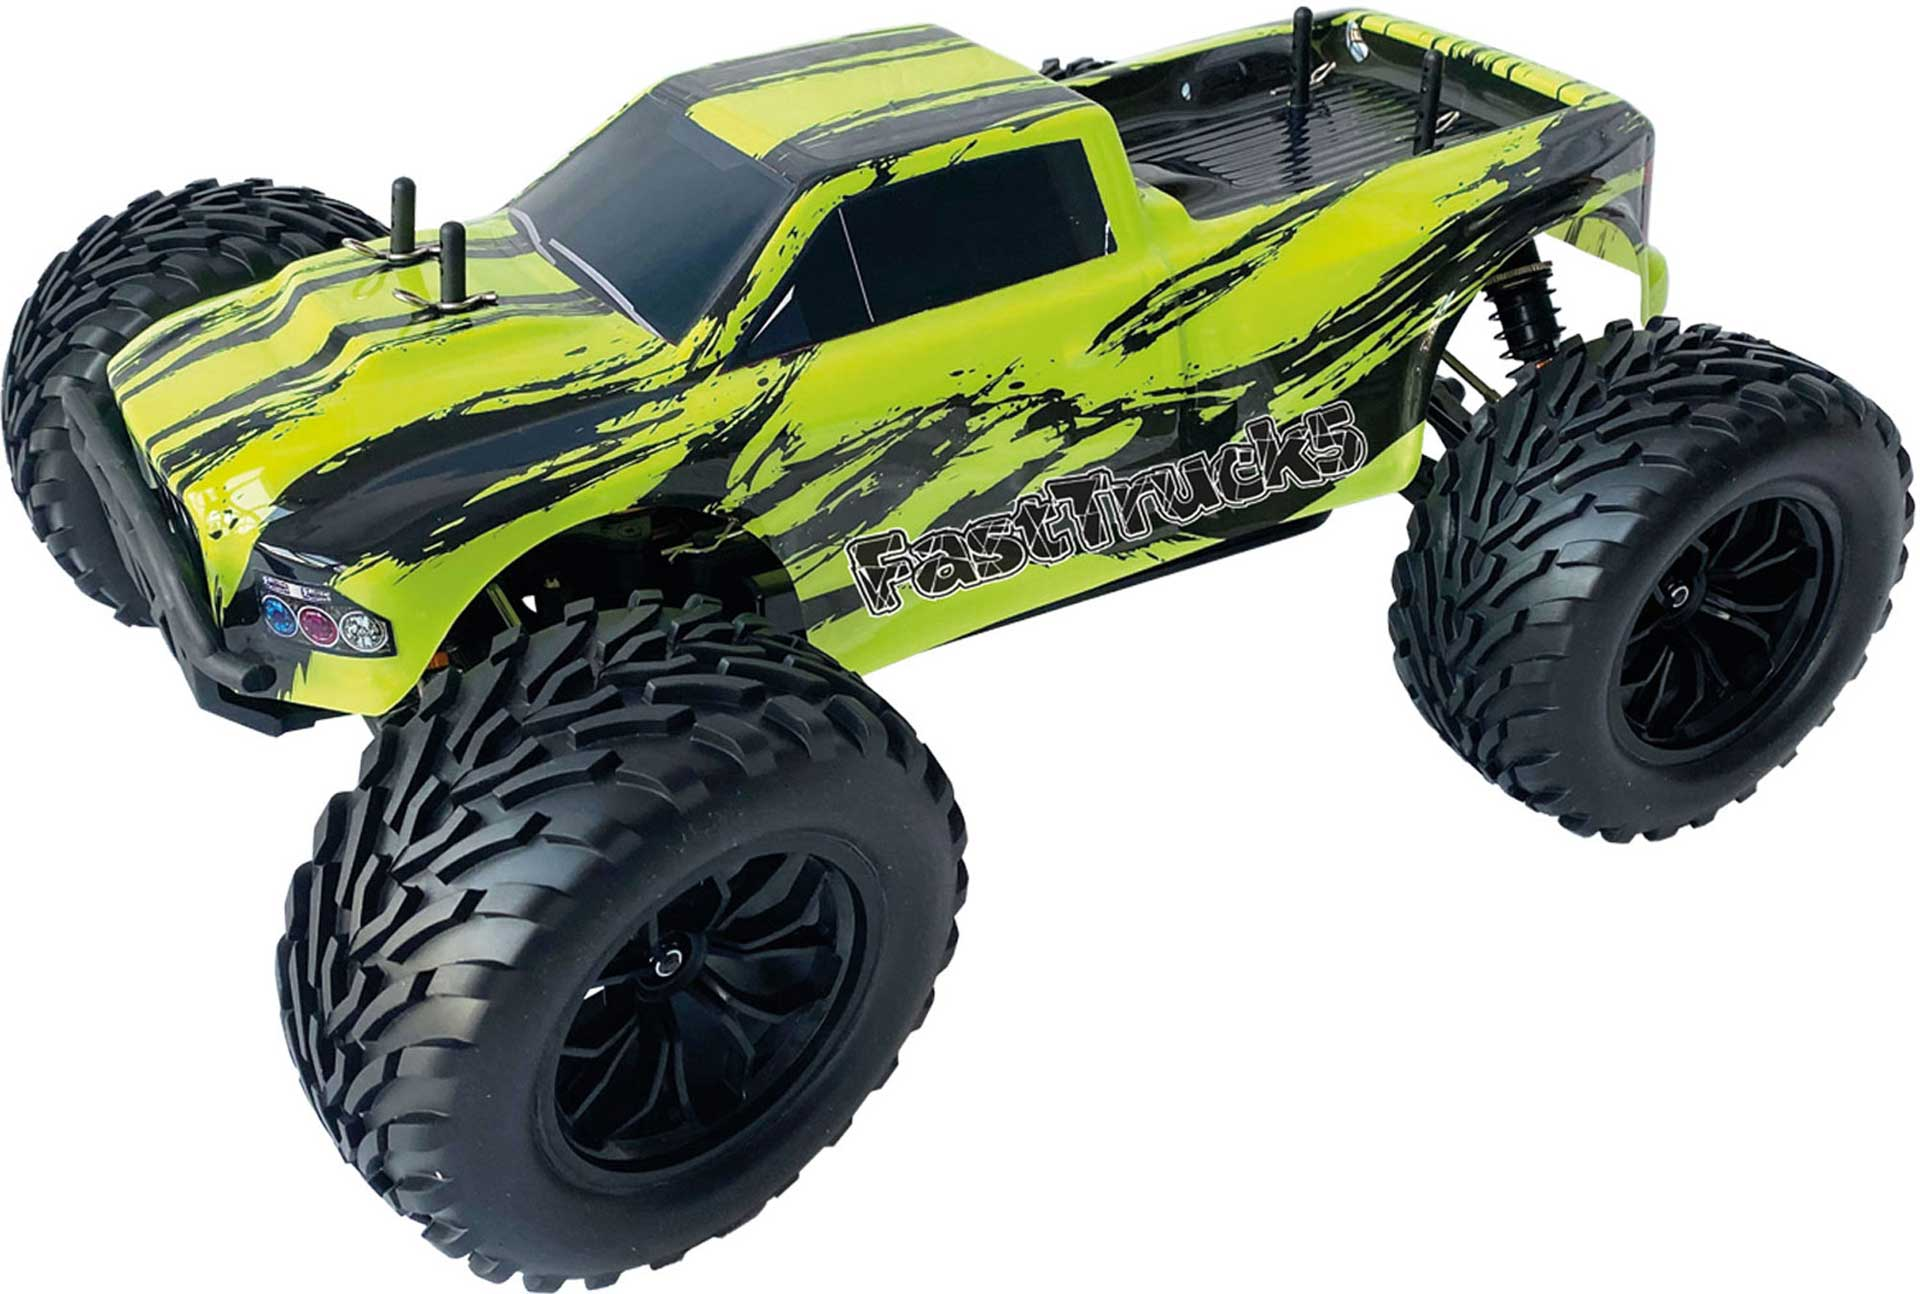 DRIVE & FLY MODELS FAST TRUCK 5 BRUSHLESS RTR 4WD 1/10